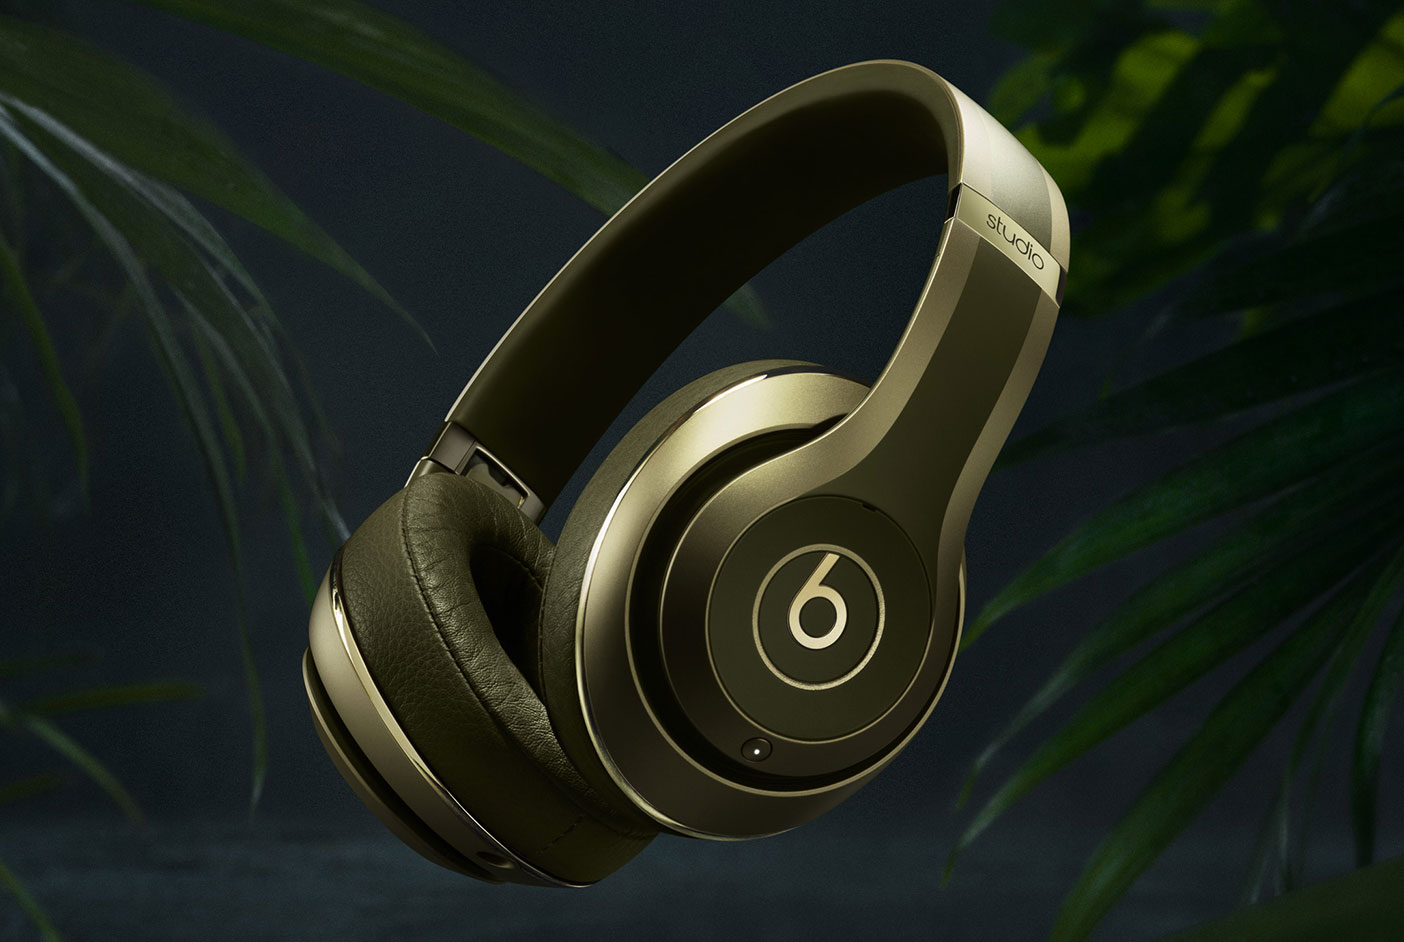 Beats by dre on twitter: